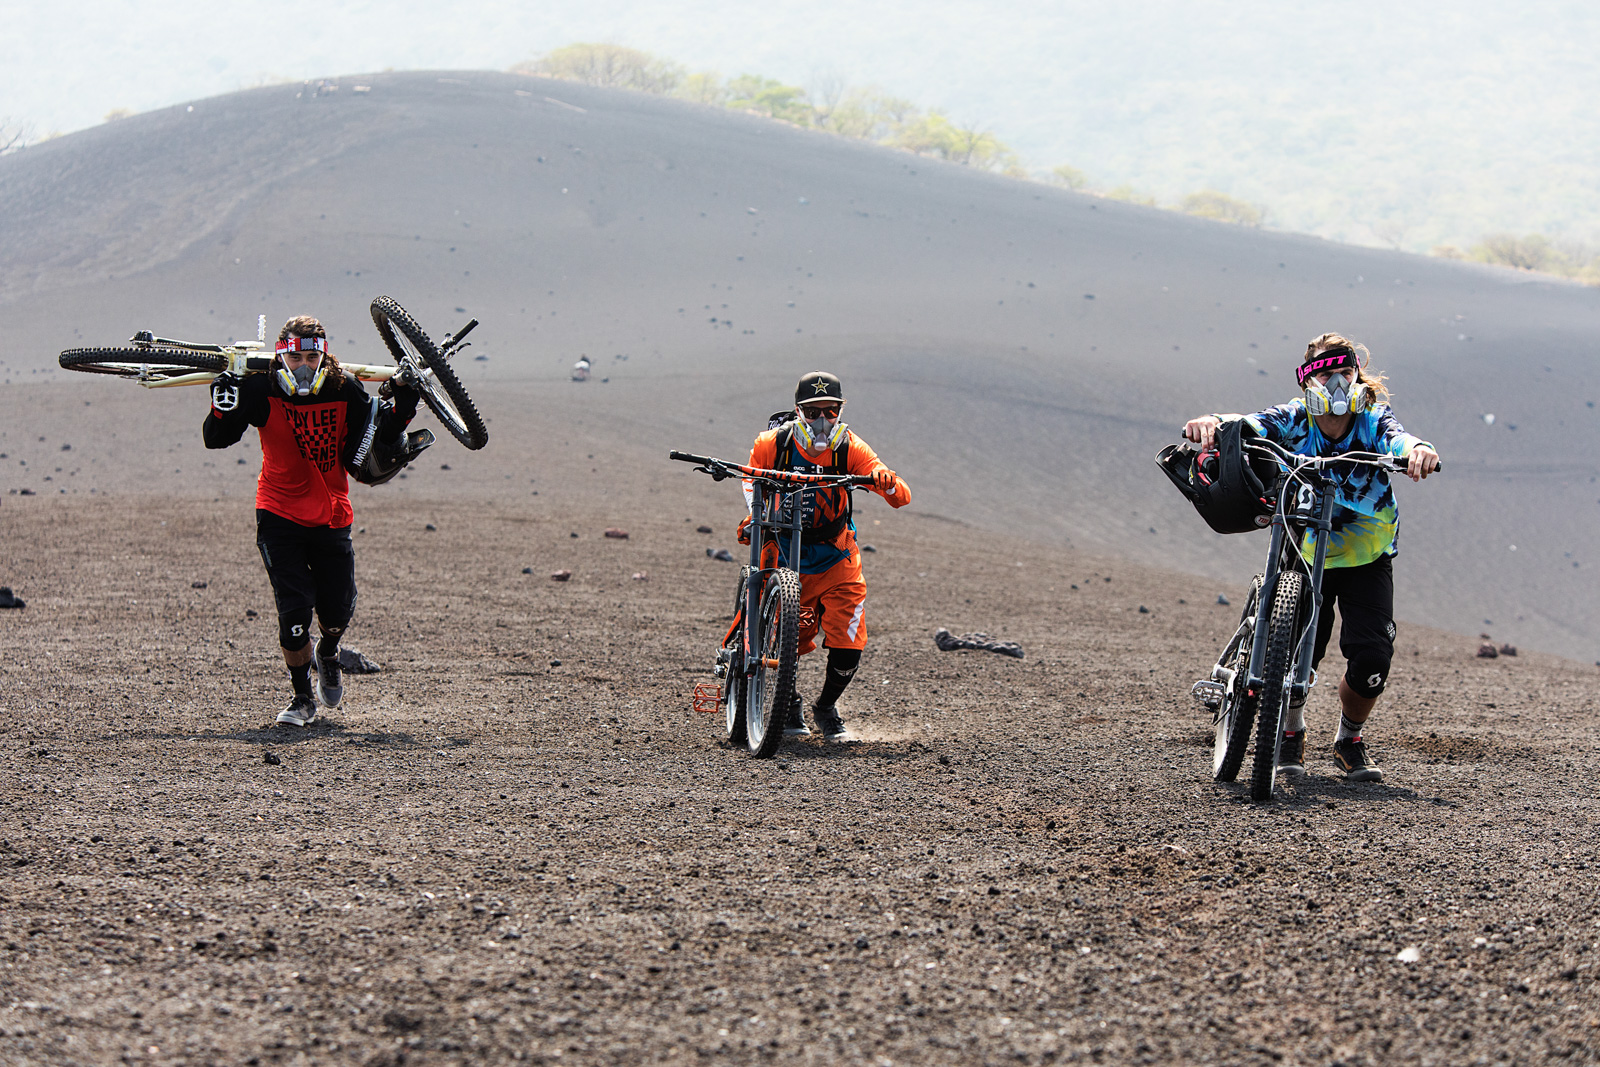 Volcanico mountain bike for Schwalbe and Flor De Cana by Boston based sports photographer Brian Nevins